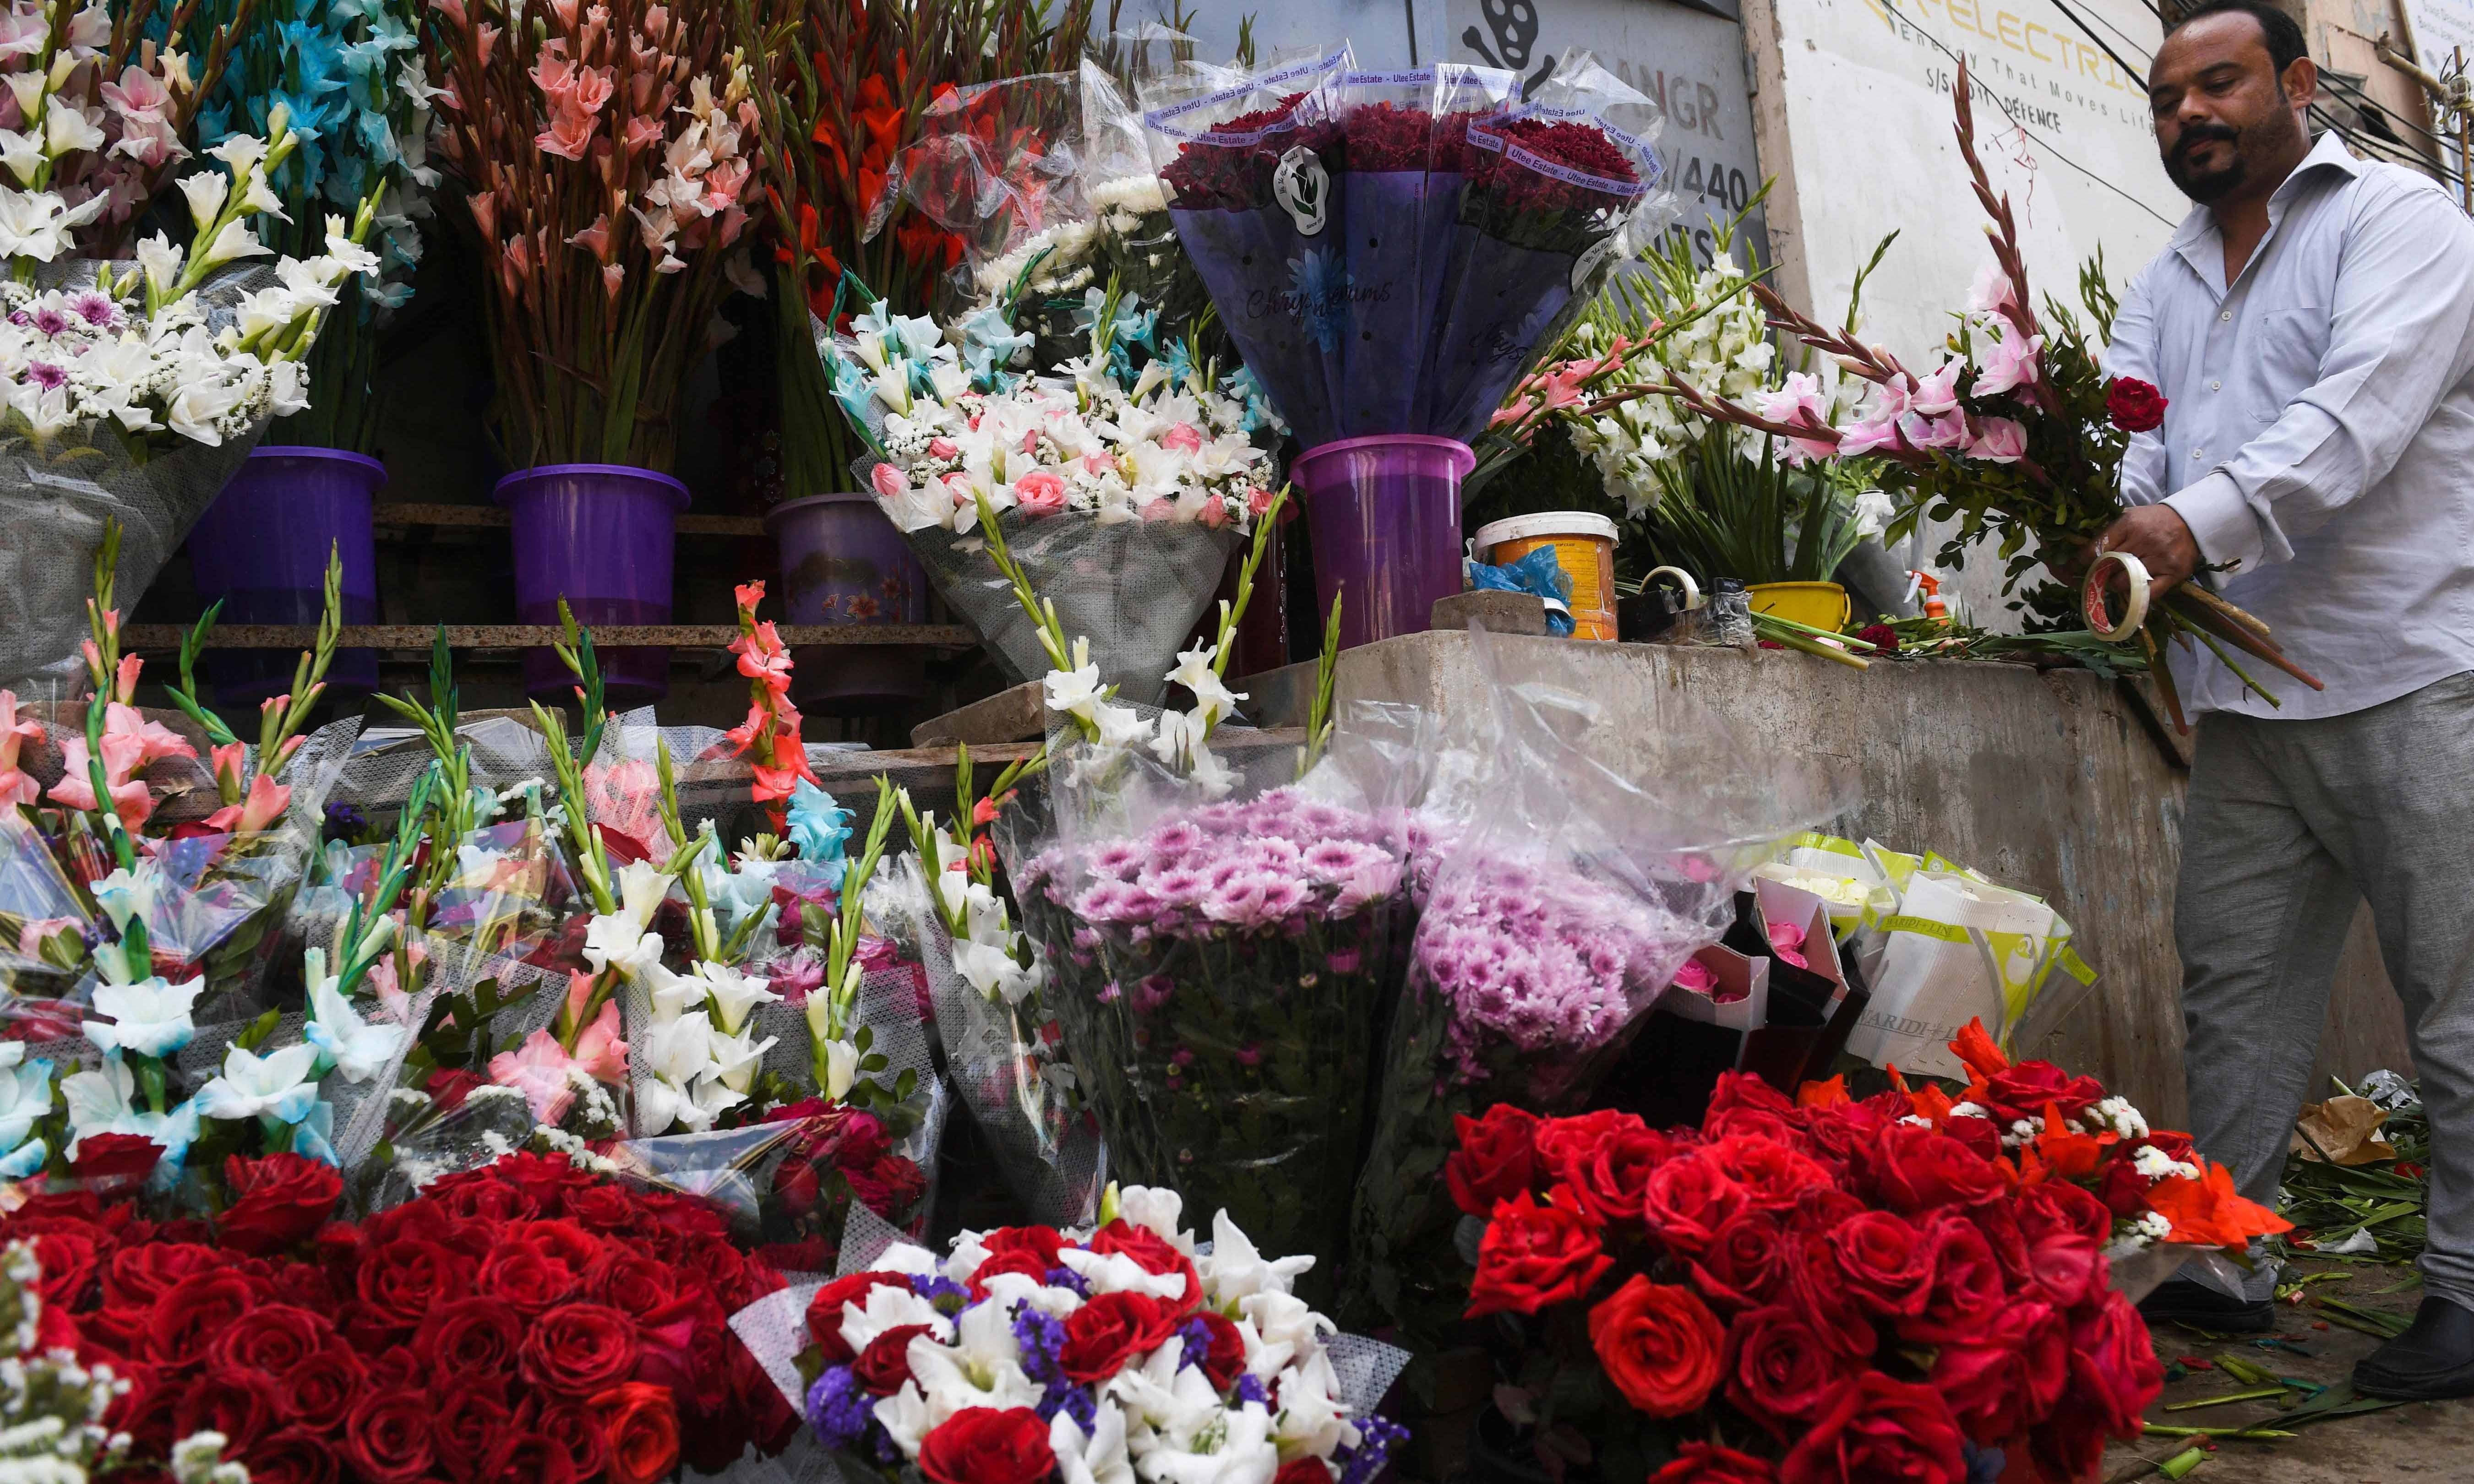 A vendor prepares a flower bouquet at a roadside stall ahead of Valentine's Day in Karachi on February 13.